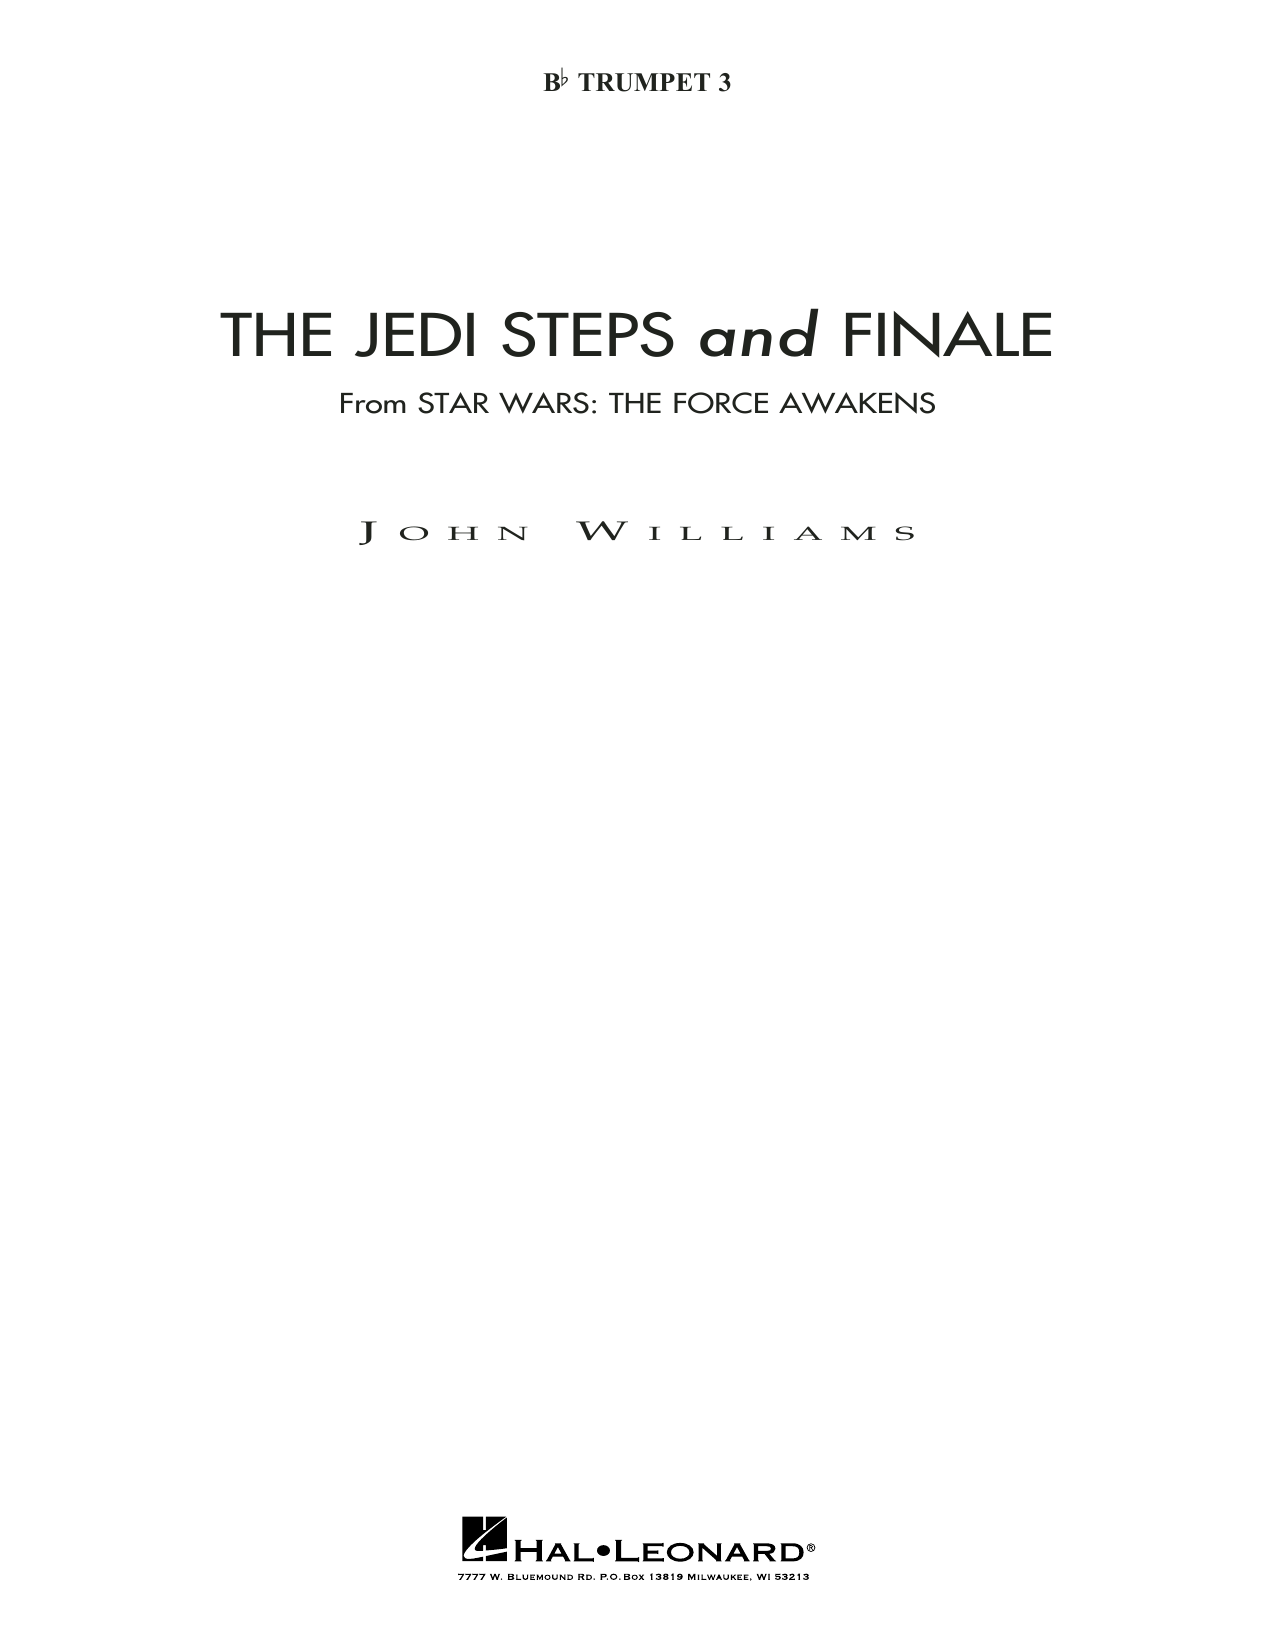 John Williams The Jedi Steps and Finale (from Star Wars: The Force Awakens) - Bb Trumpet 3 (sub. C Tpt. 3) sheet music preview music notes and score for Concert Band including 4 page(s)